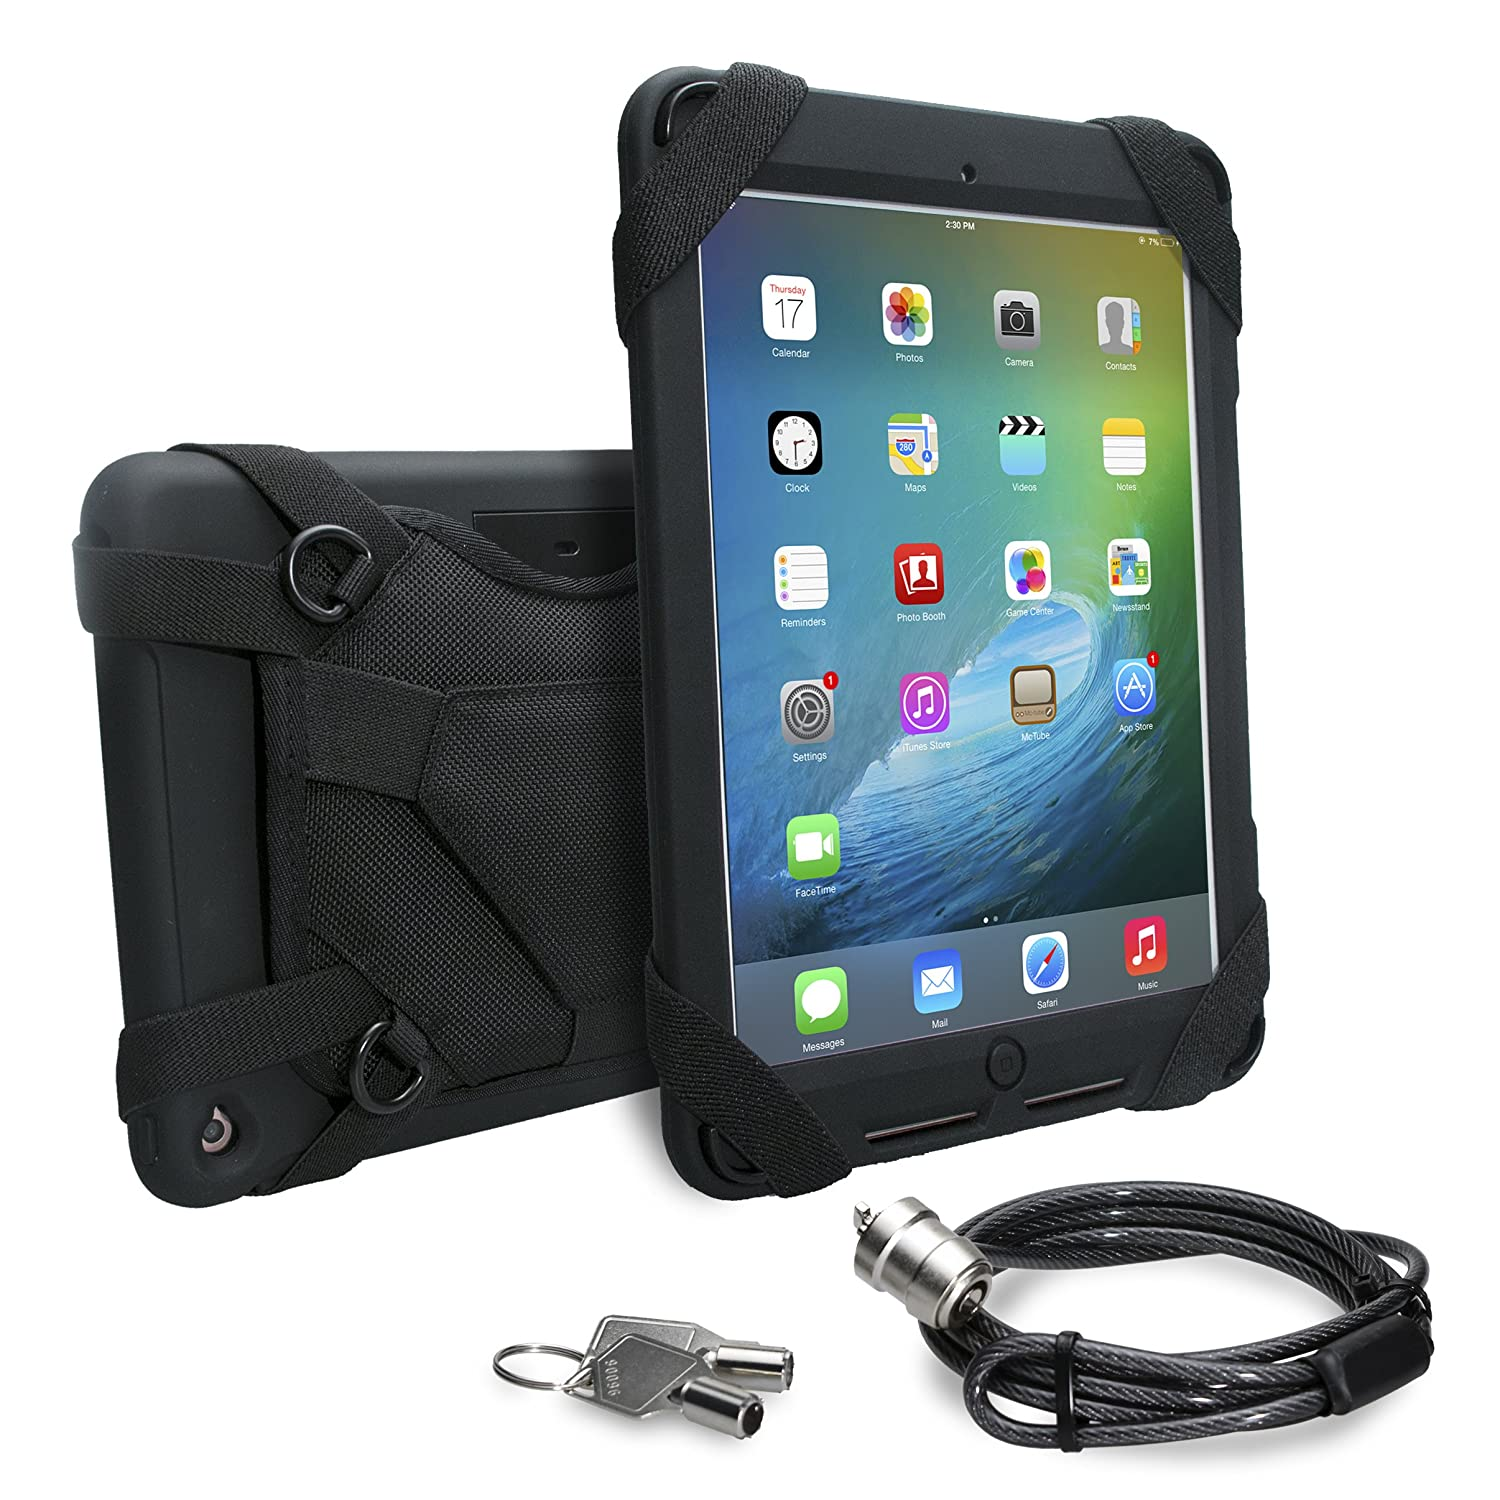 CTA Digital Security Carrying Case with Anti-Theft Cable for iPad Pro 9.7 and iPad Air 2 (PAD-SCC)